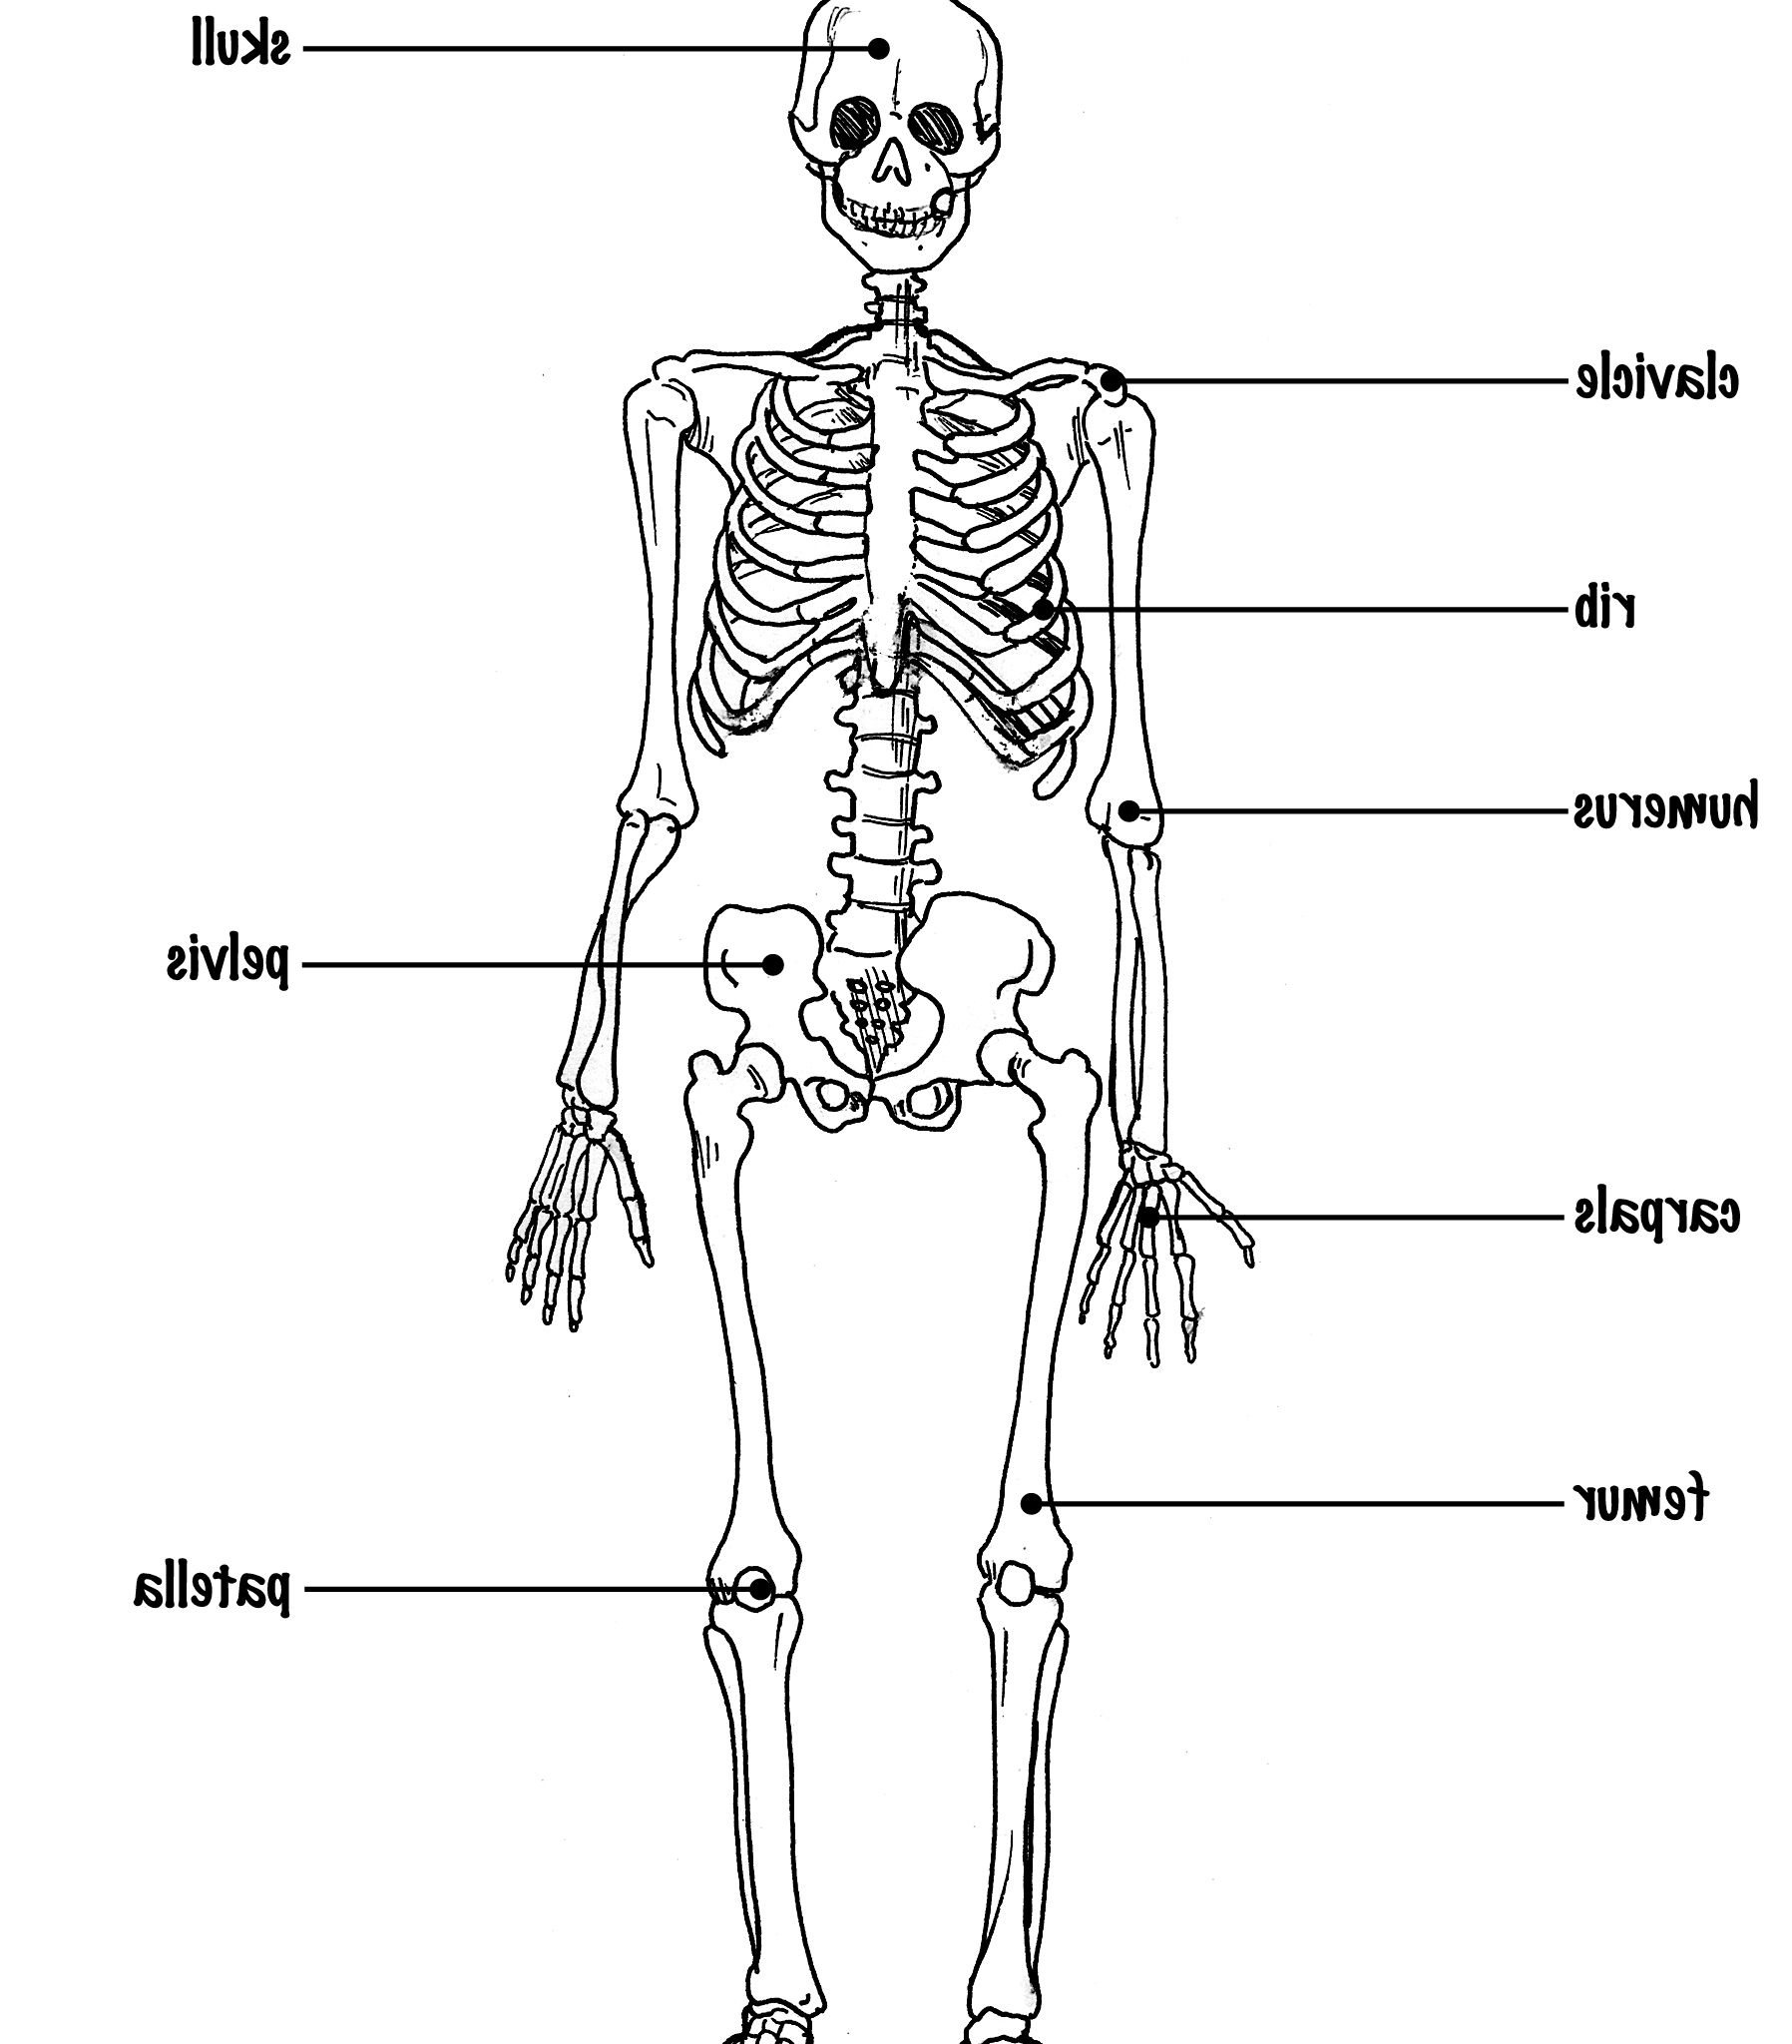 The Skeletal System Diagram Labeled  The Skeletal System Diagram Labeled Skeletal System